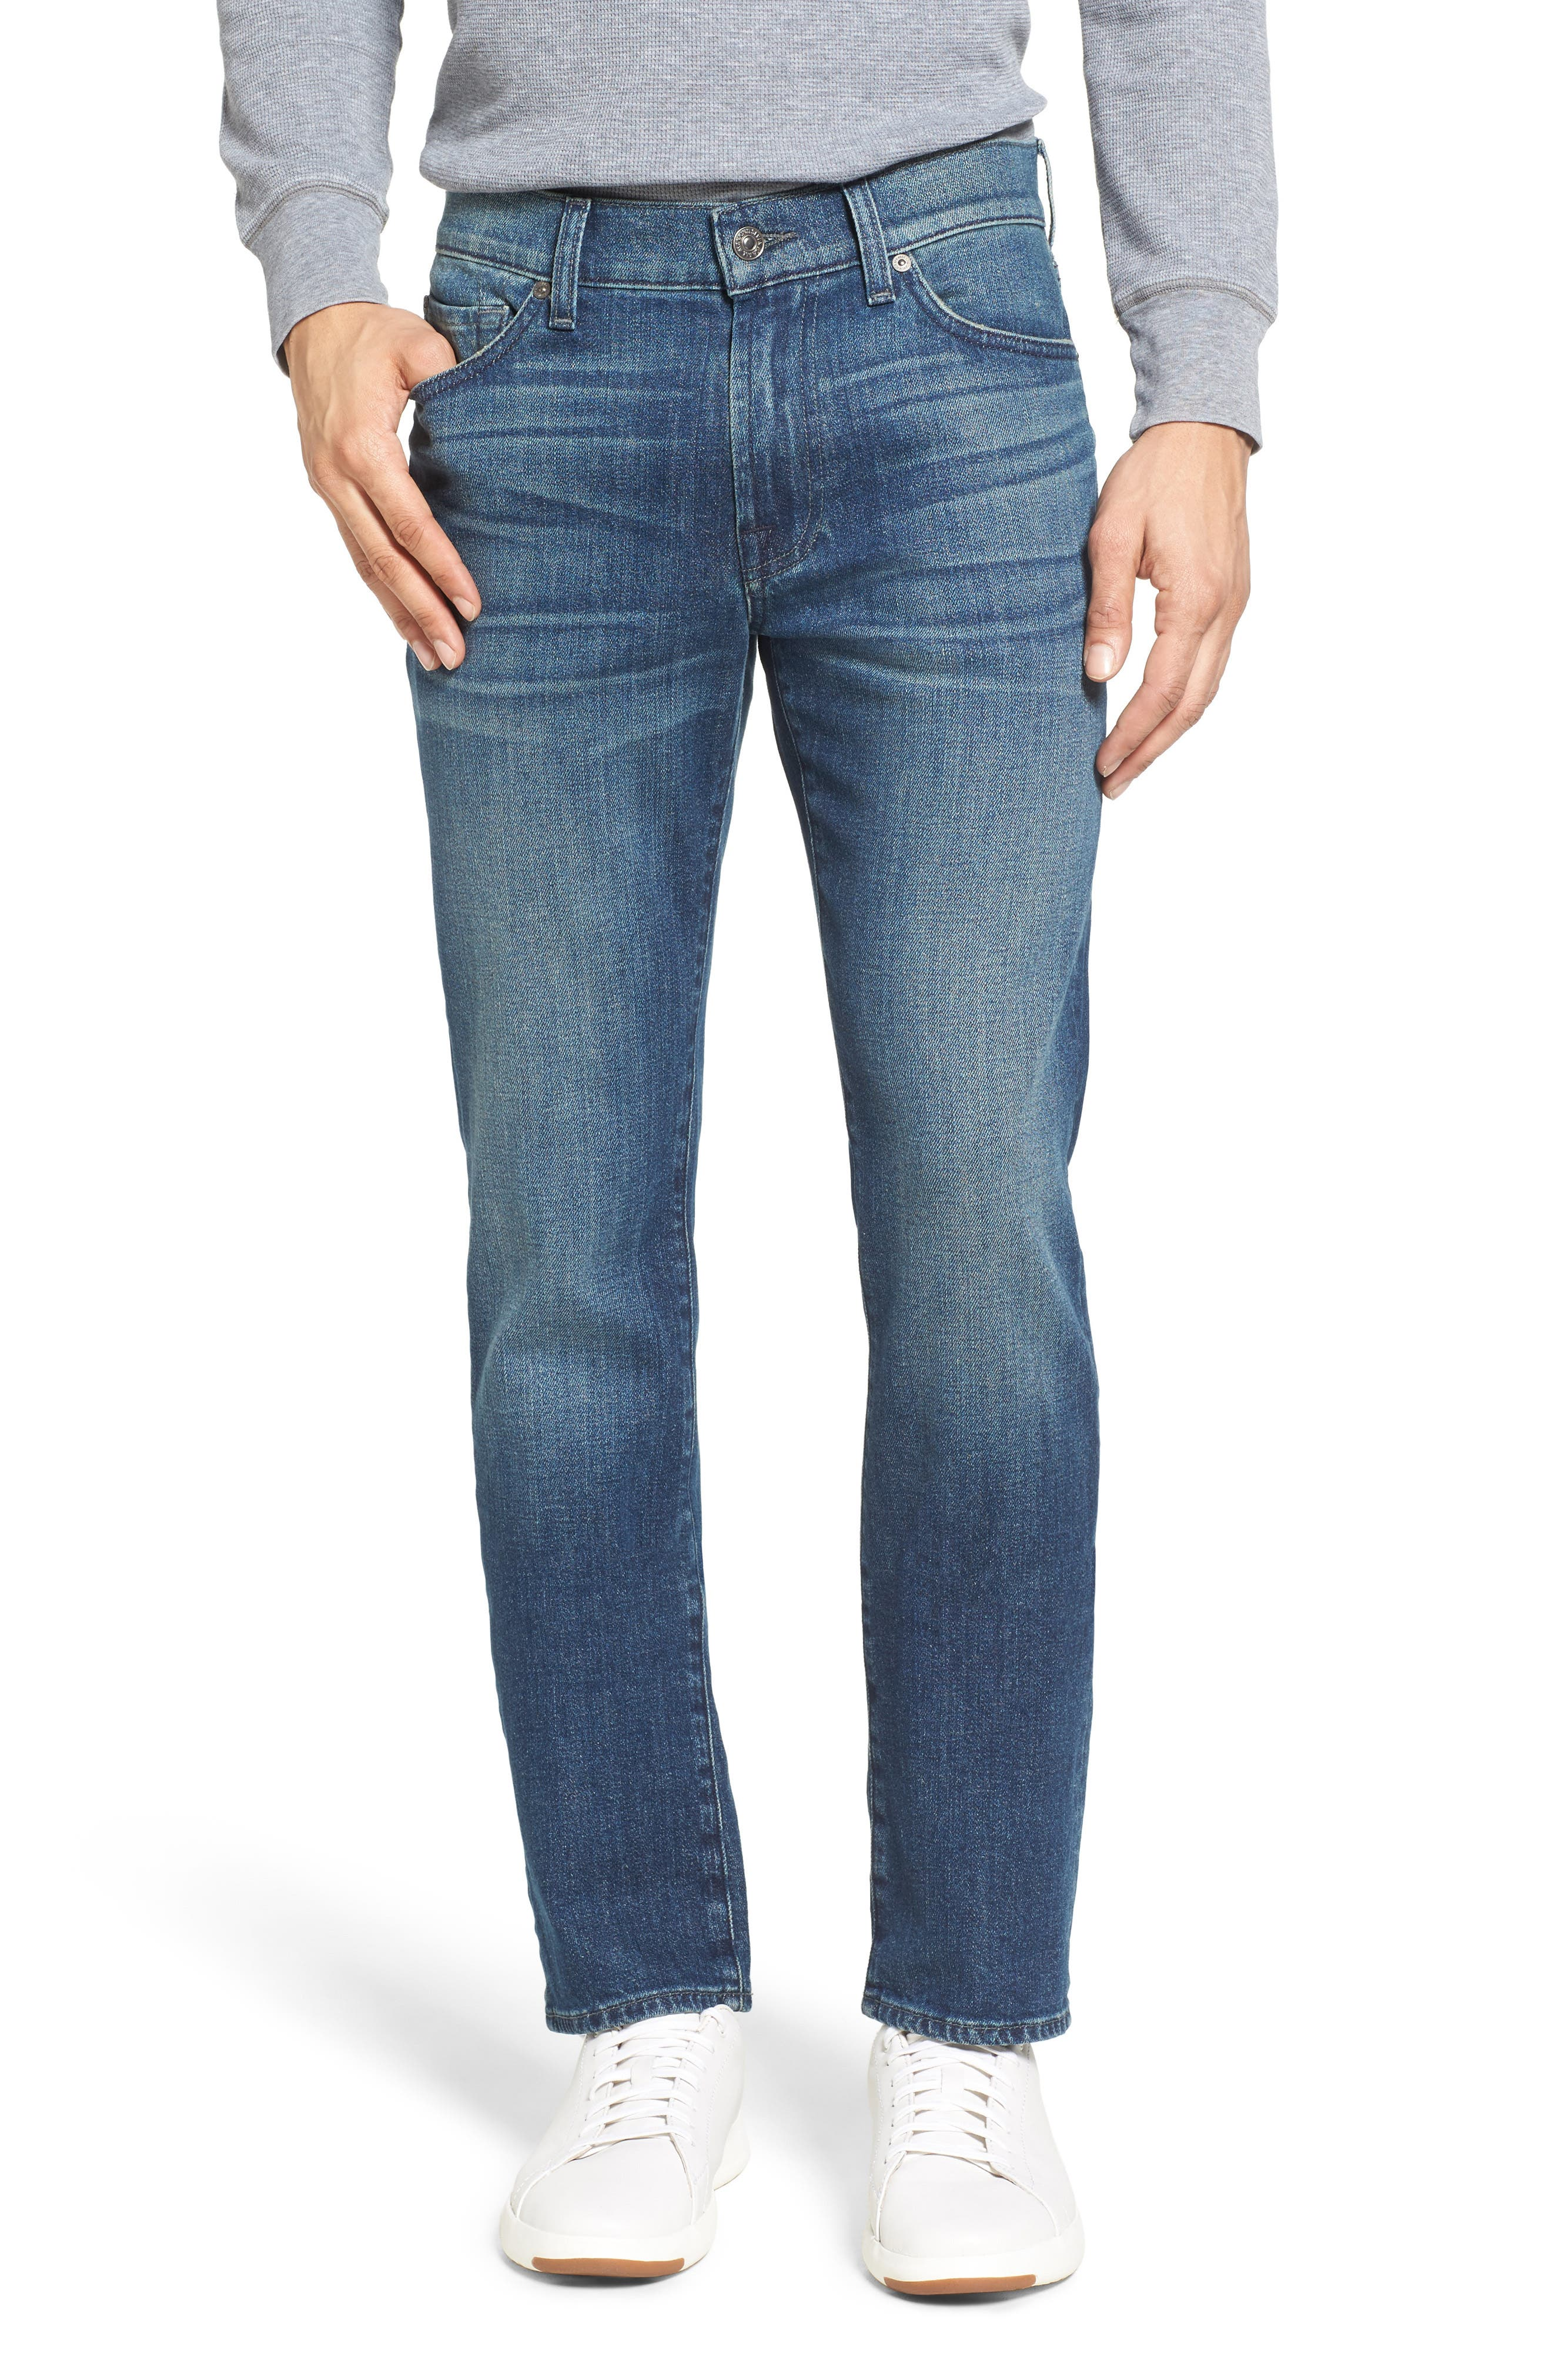 Main Image - 7 For All Mankind Slimmy Slim Fit Jeans (Calgary Blue)